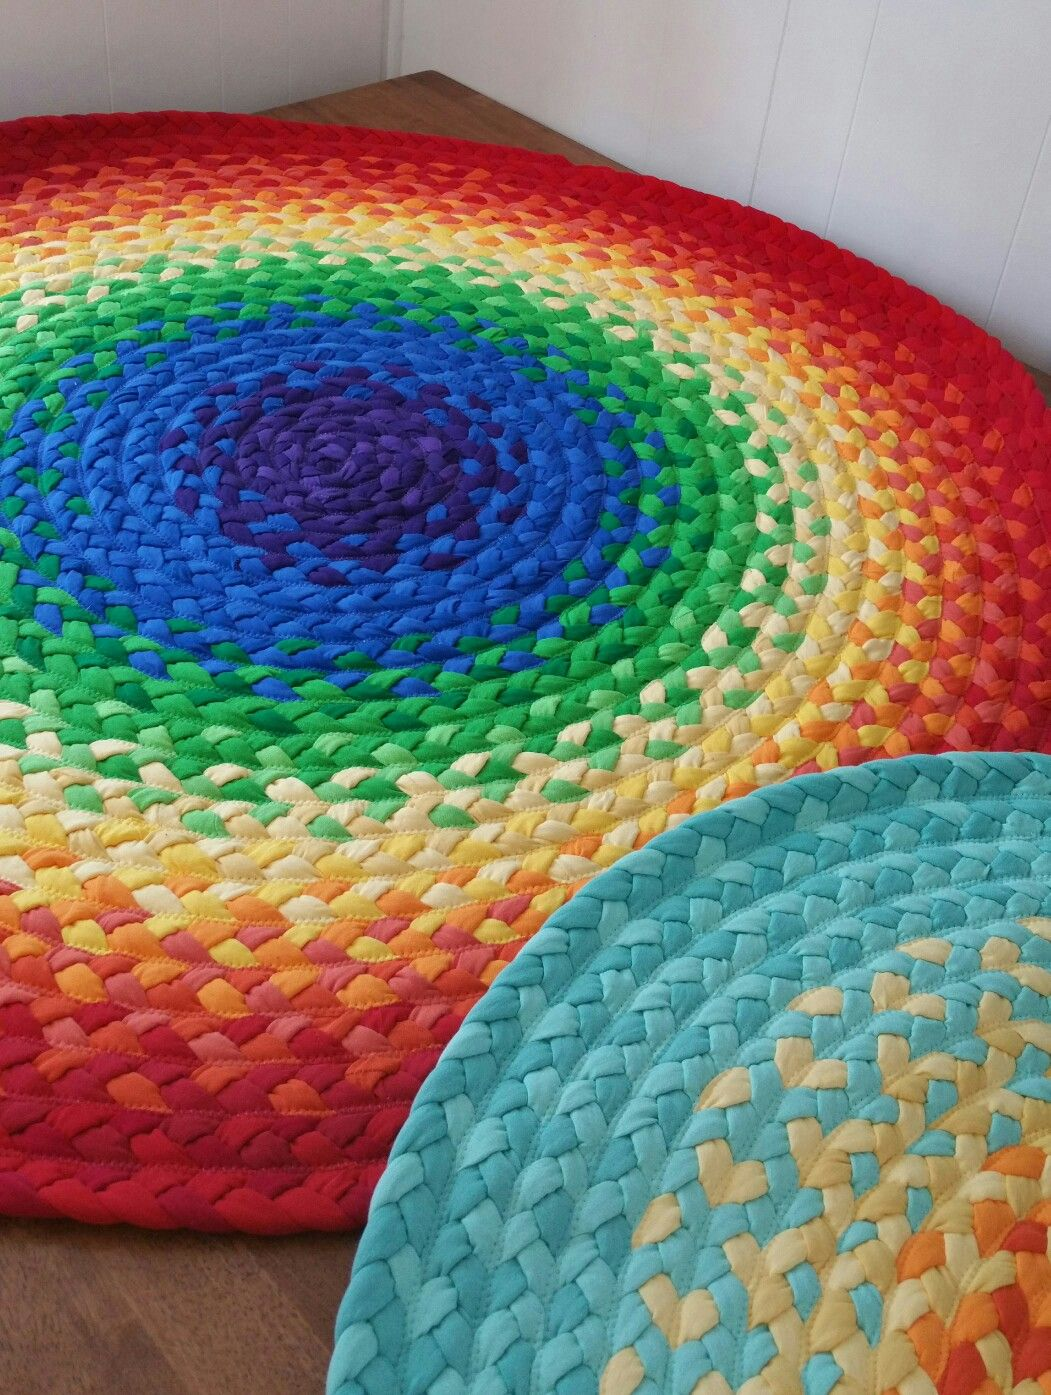 Rainbow Bedroom Ideas Rainbow Nursery Braided Rug Available At Greenatheartrugs